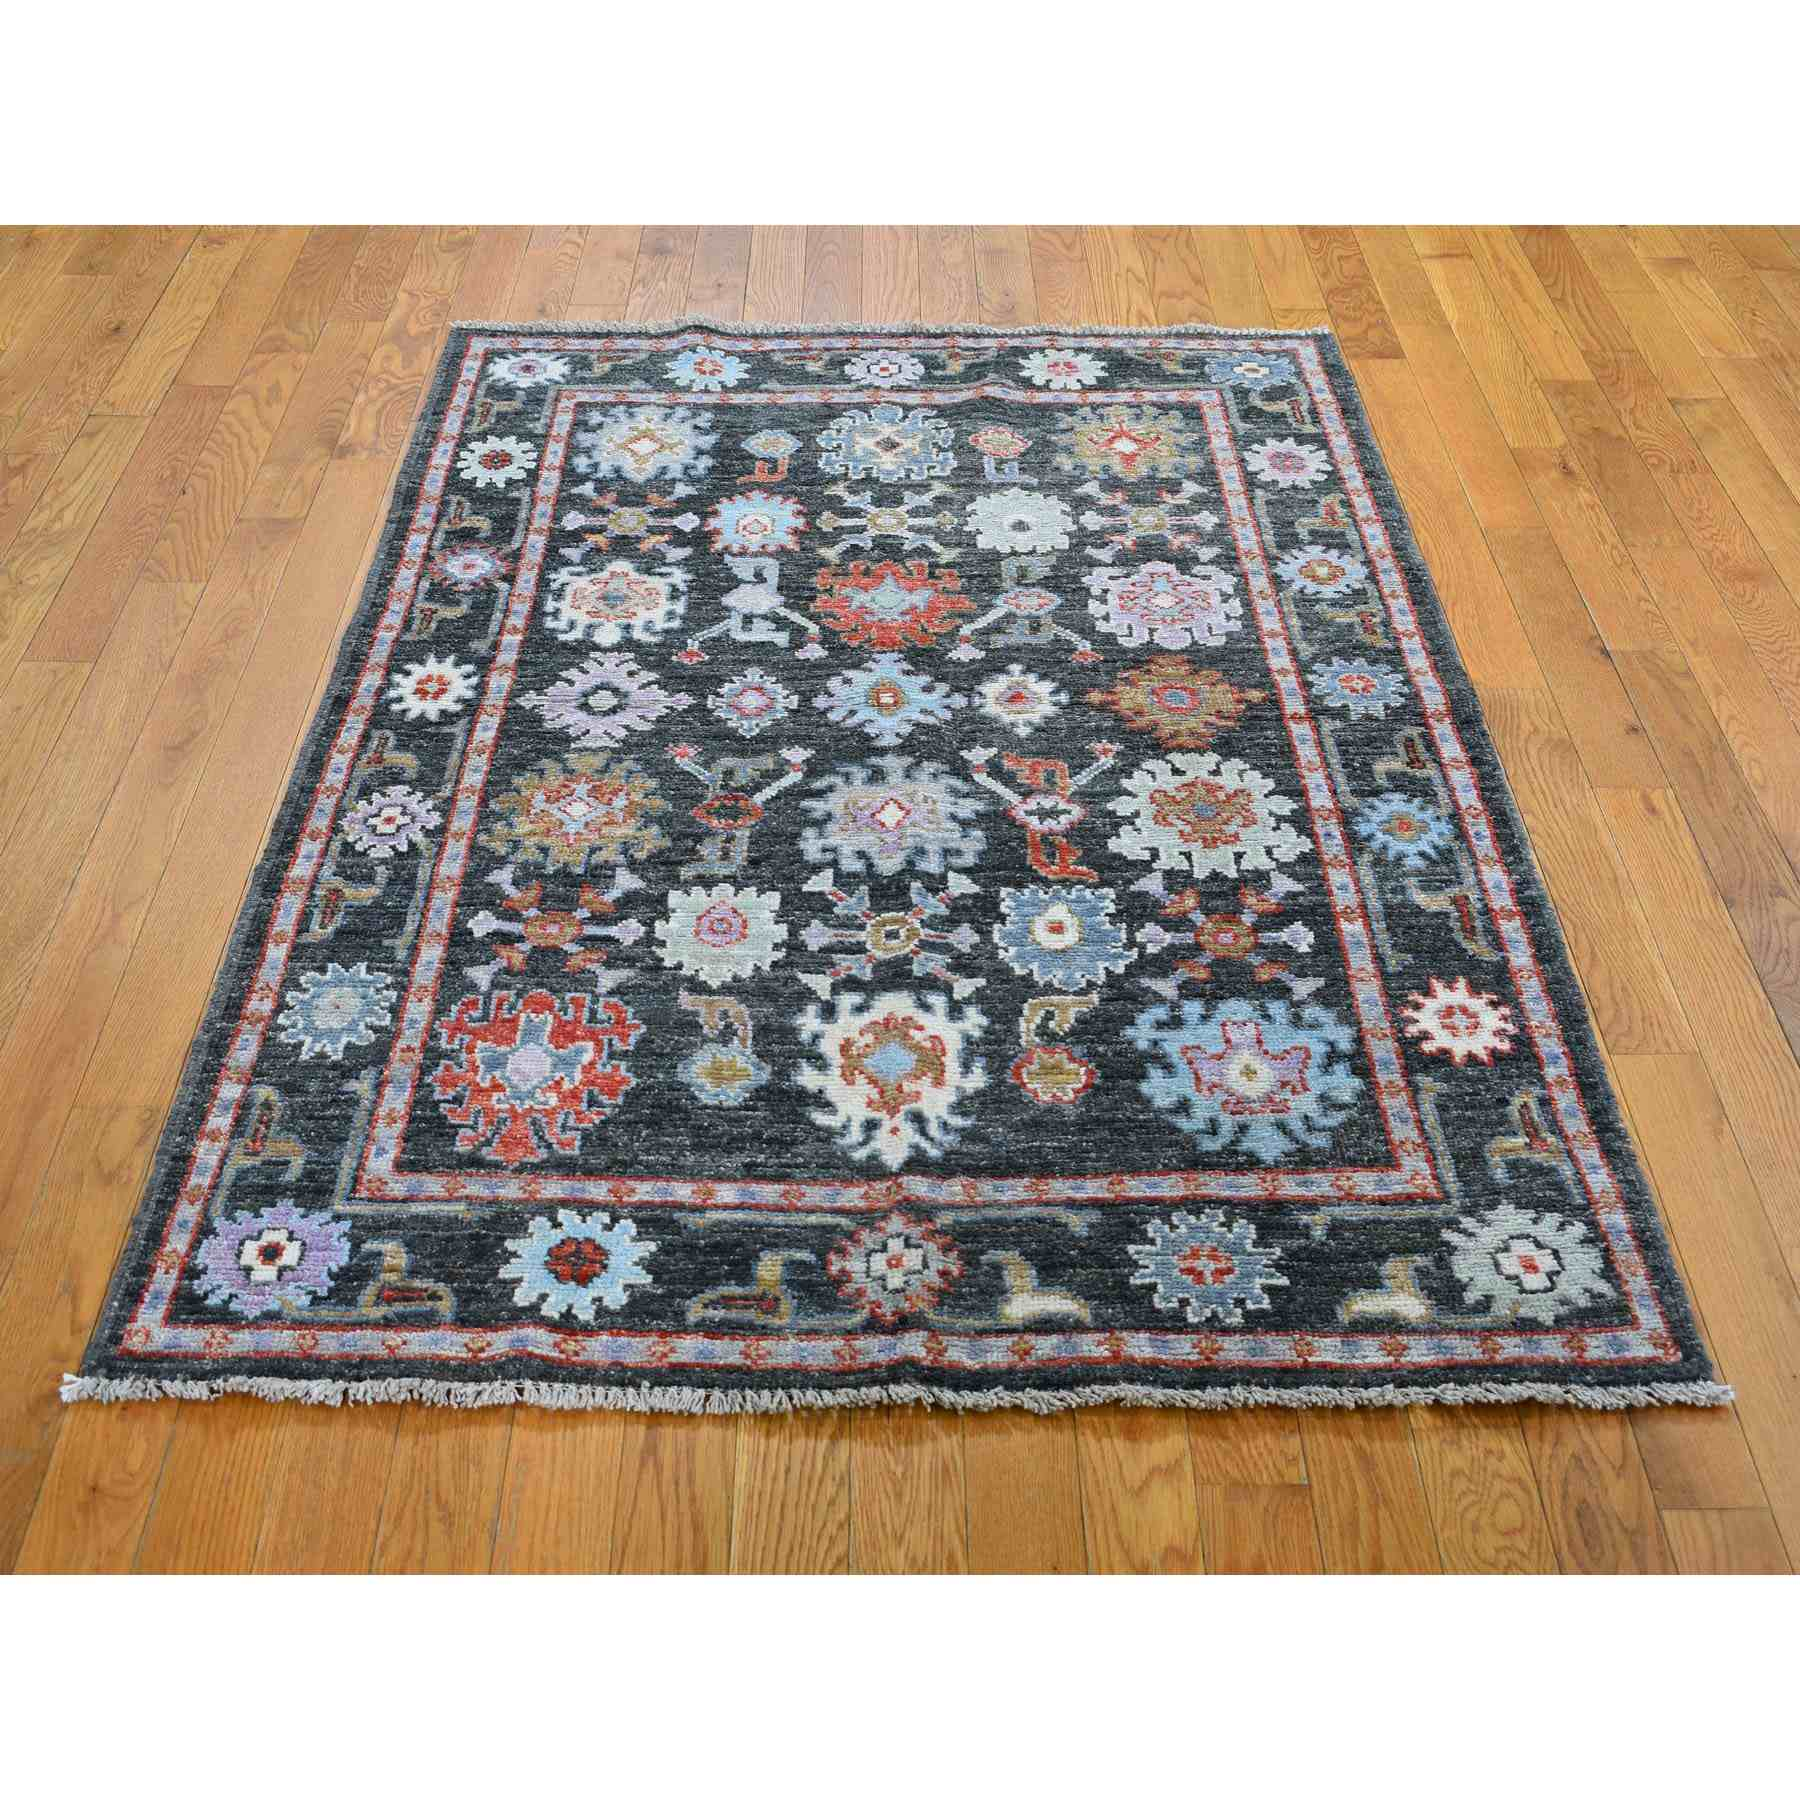 Oushak-And-Peshawar-Hand-Knotted-Rug-245995